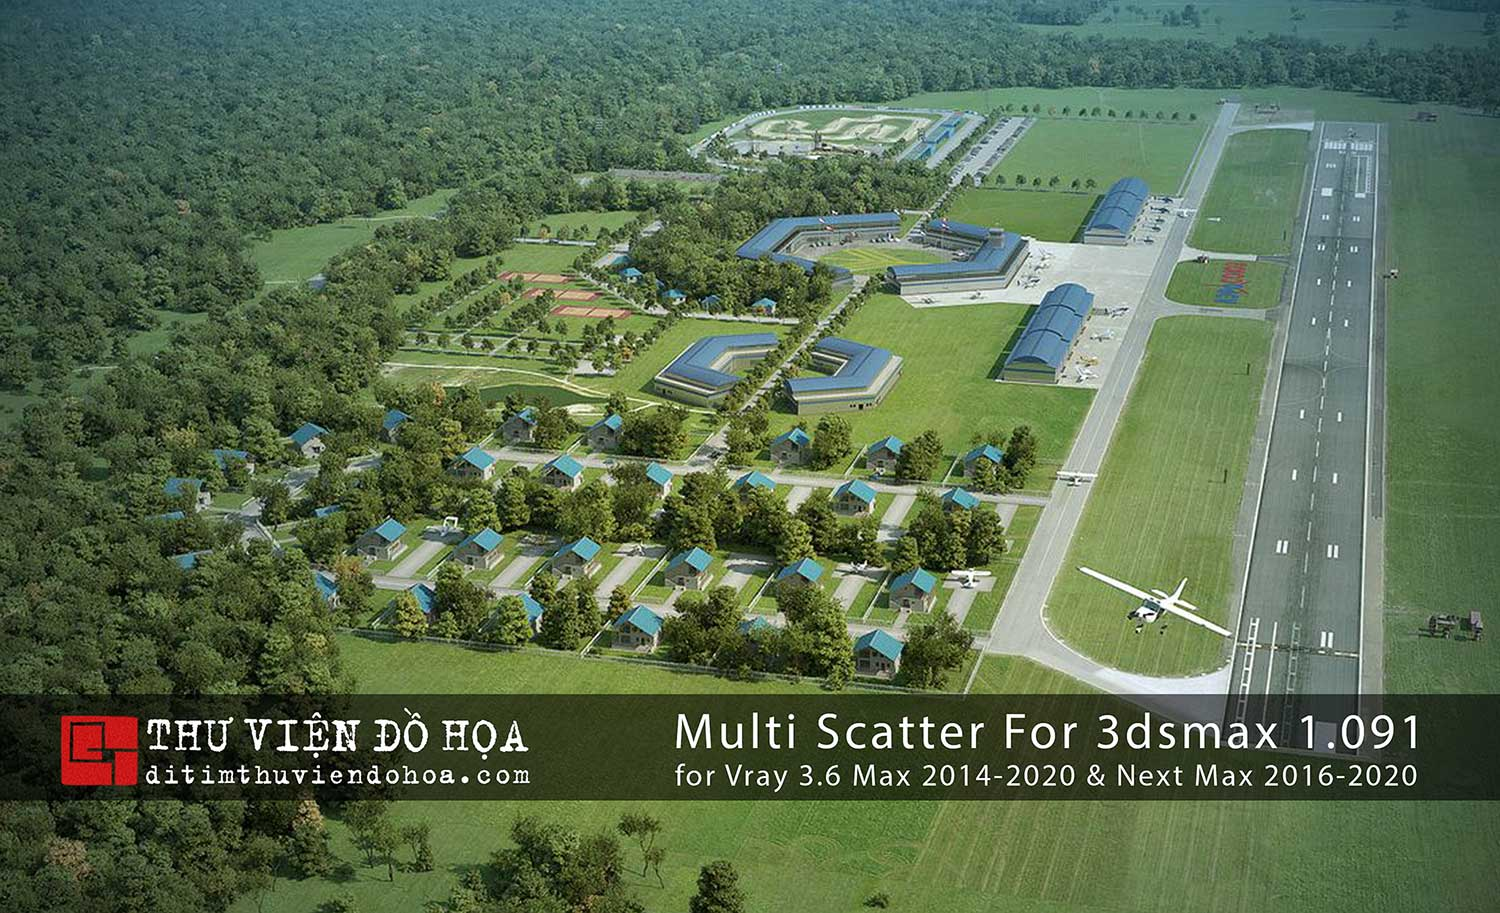 [ Plugins-3dsmax ] Multi Scatter For 3dsmax 1.091 for Vray 3.6 Max 2014-2020 & Next Max 2016-2020